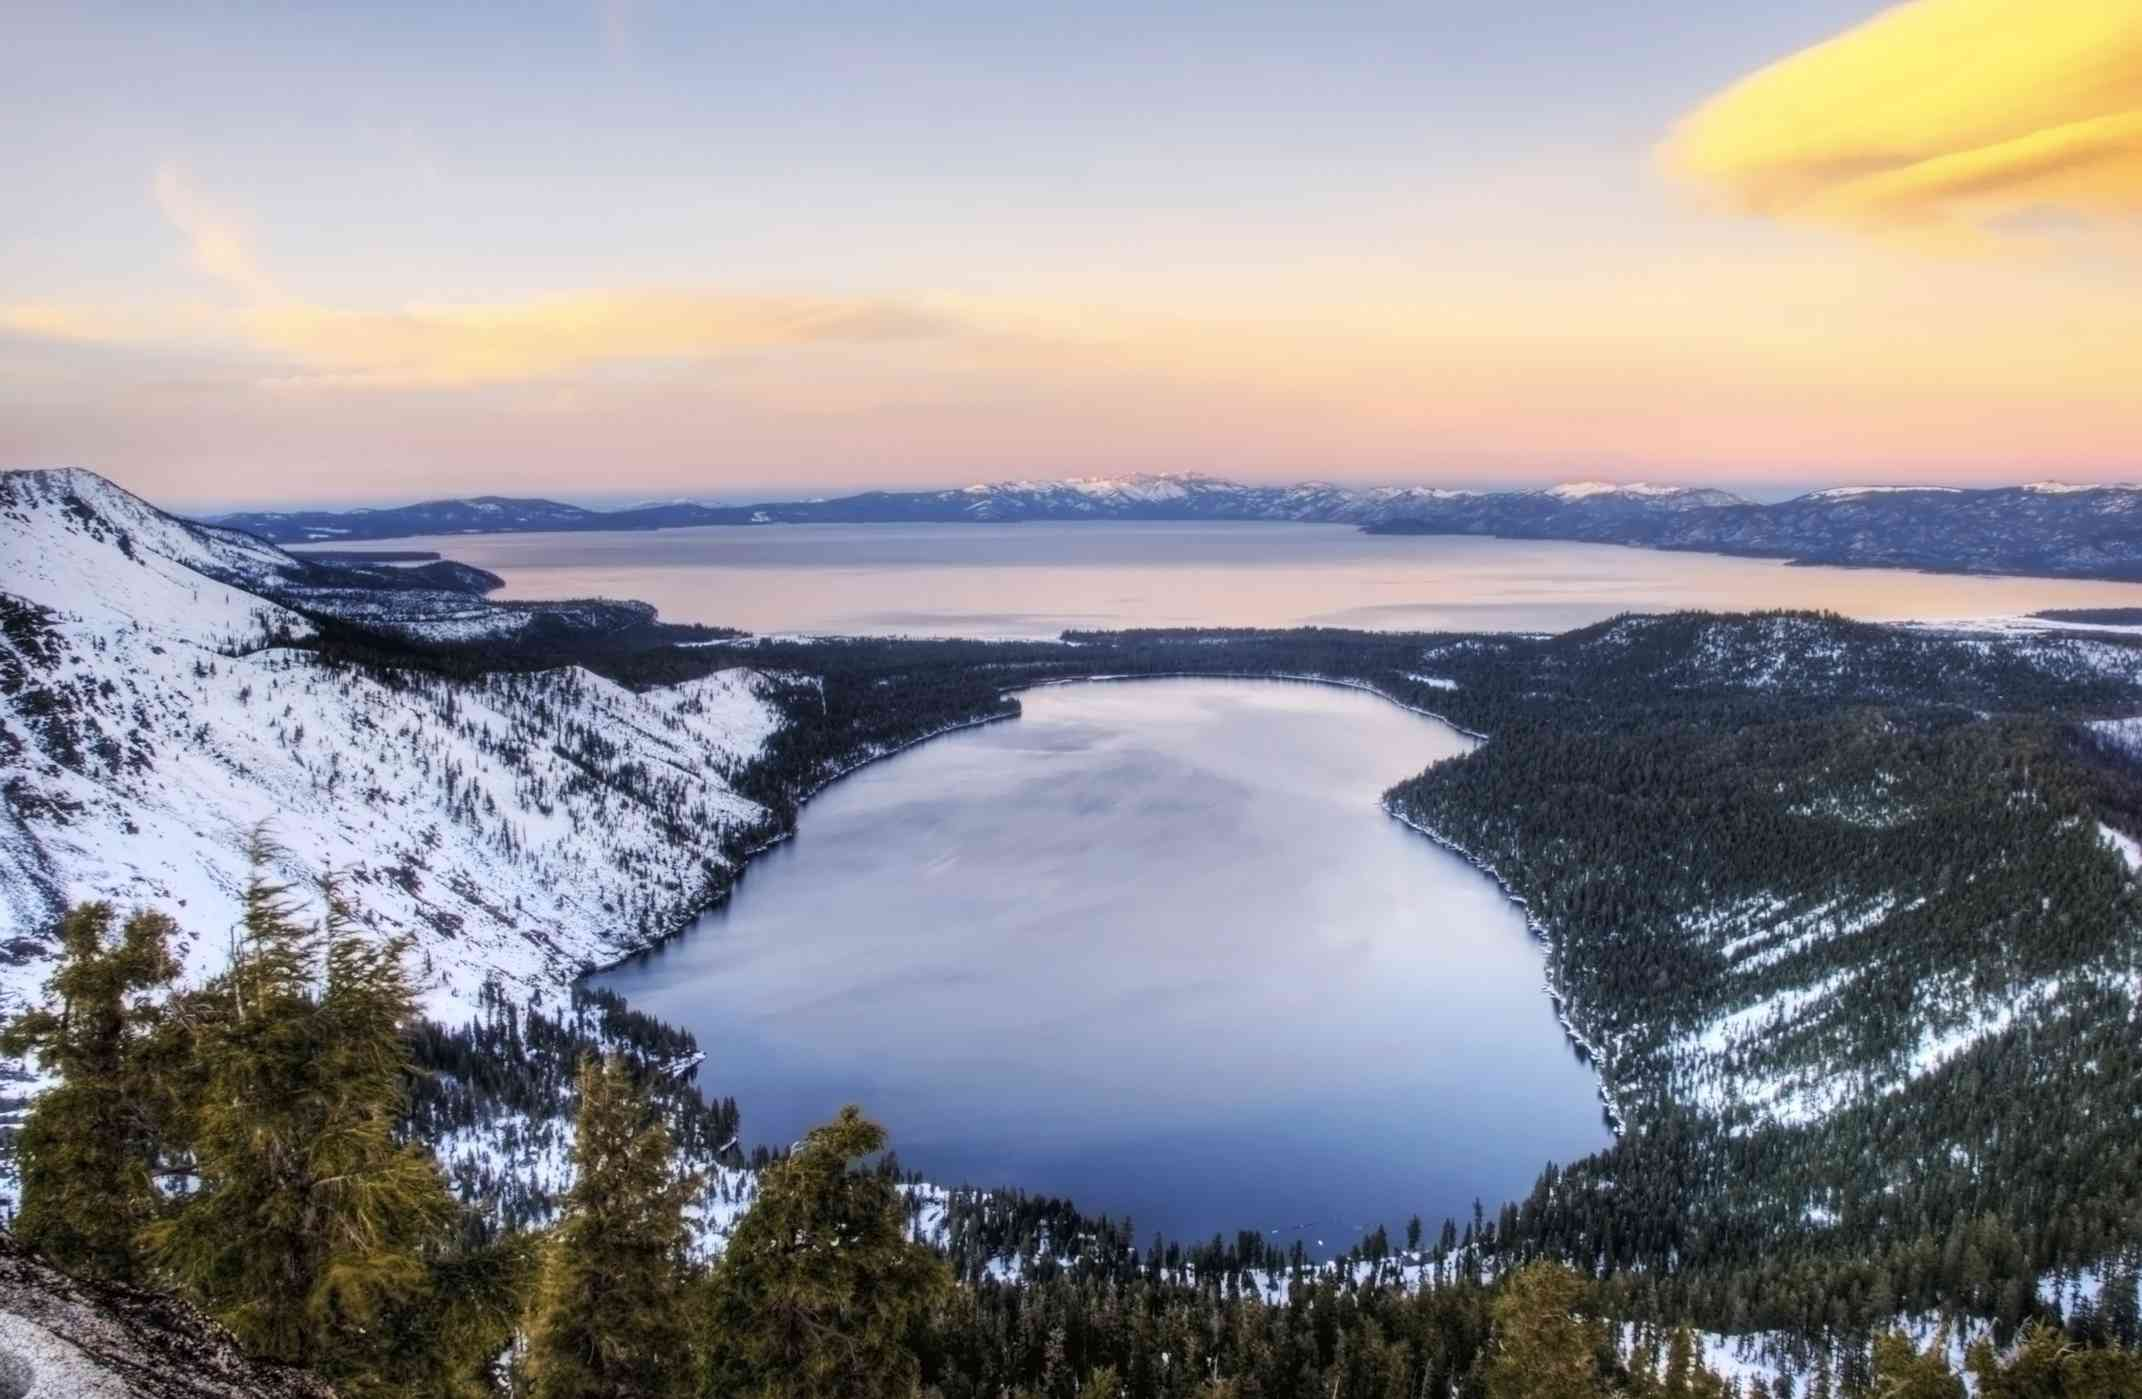 An aerial view of Lake Tahoe with snowy forest around it and a sunset in the distance.